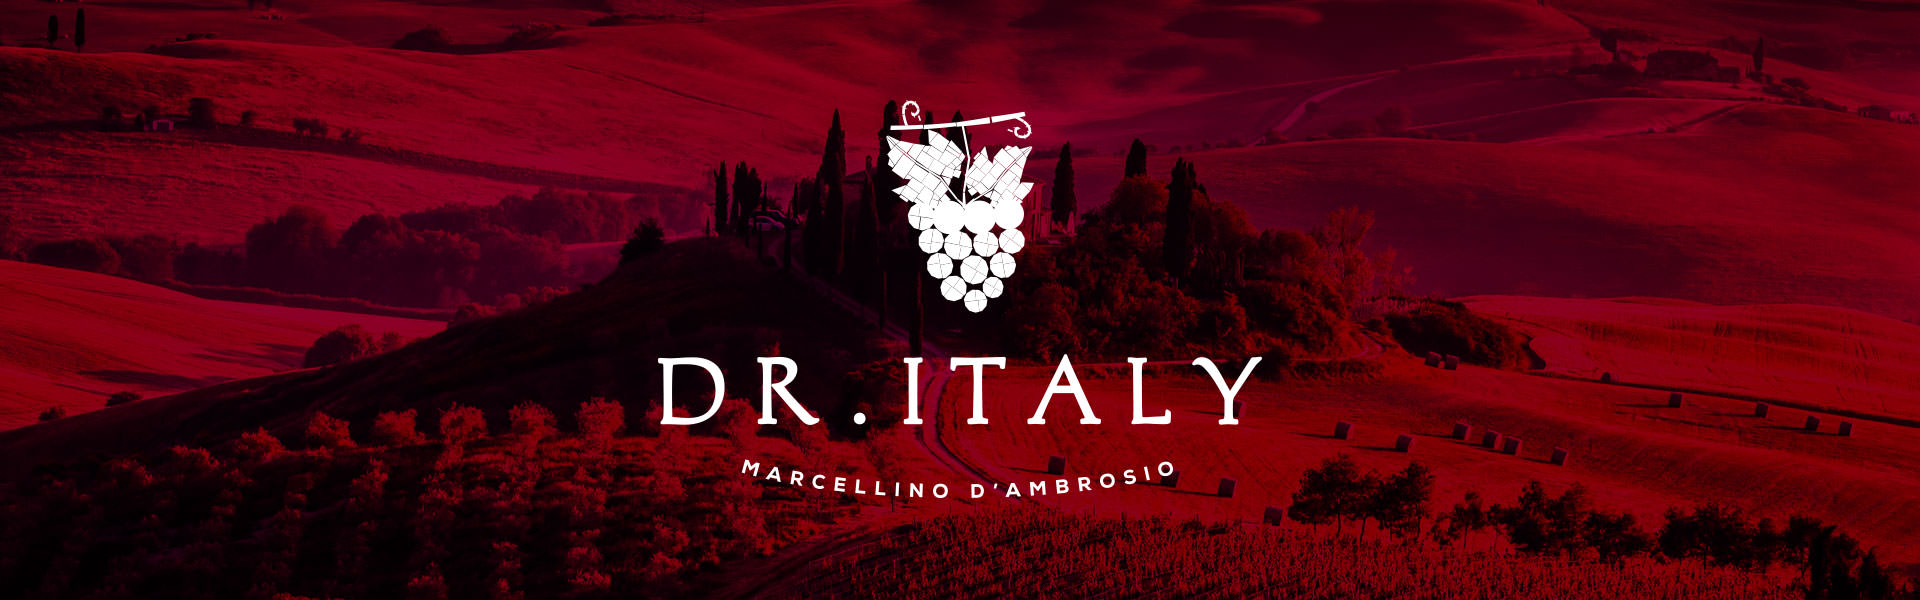 Dr Italy Blog